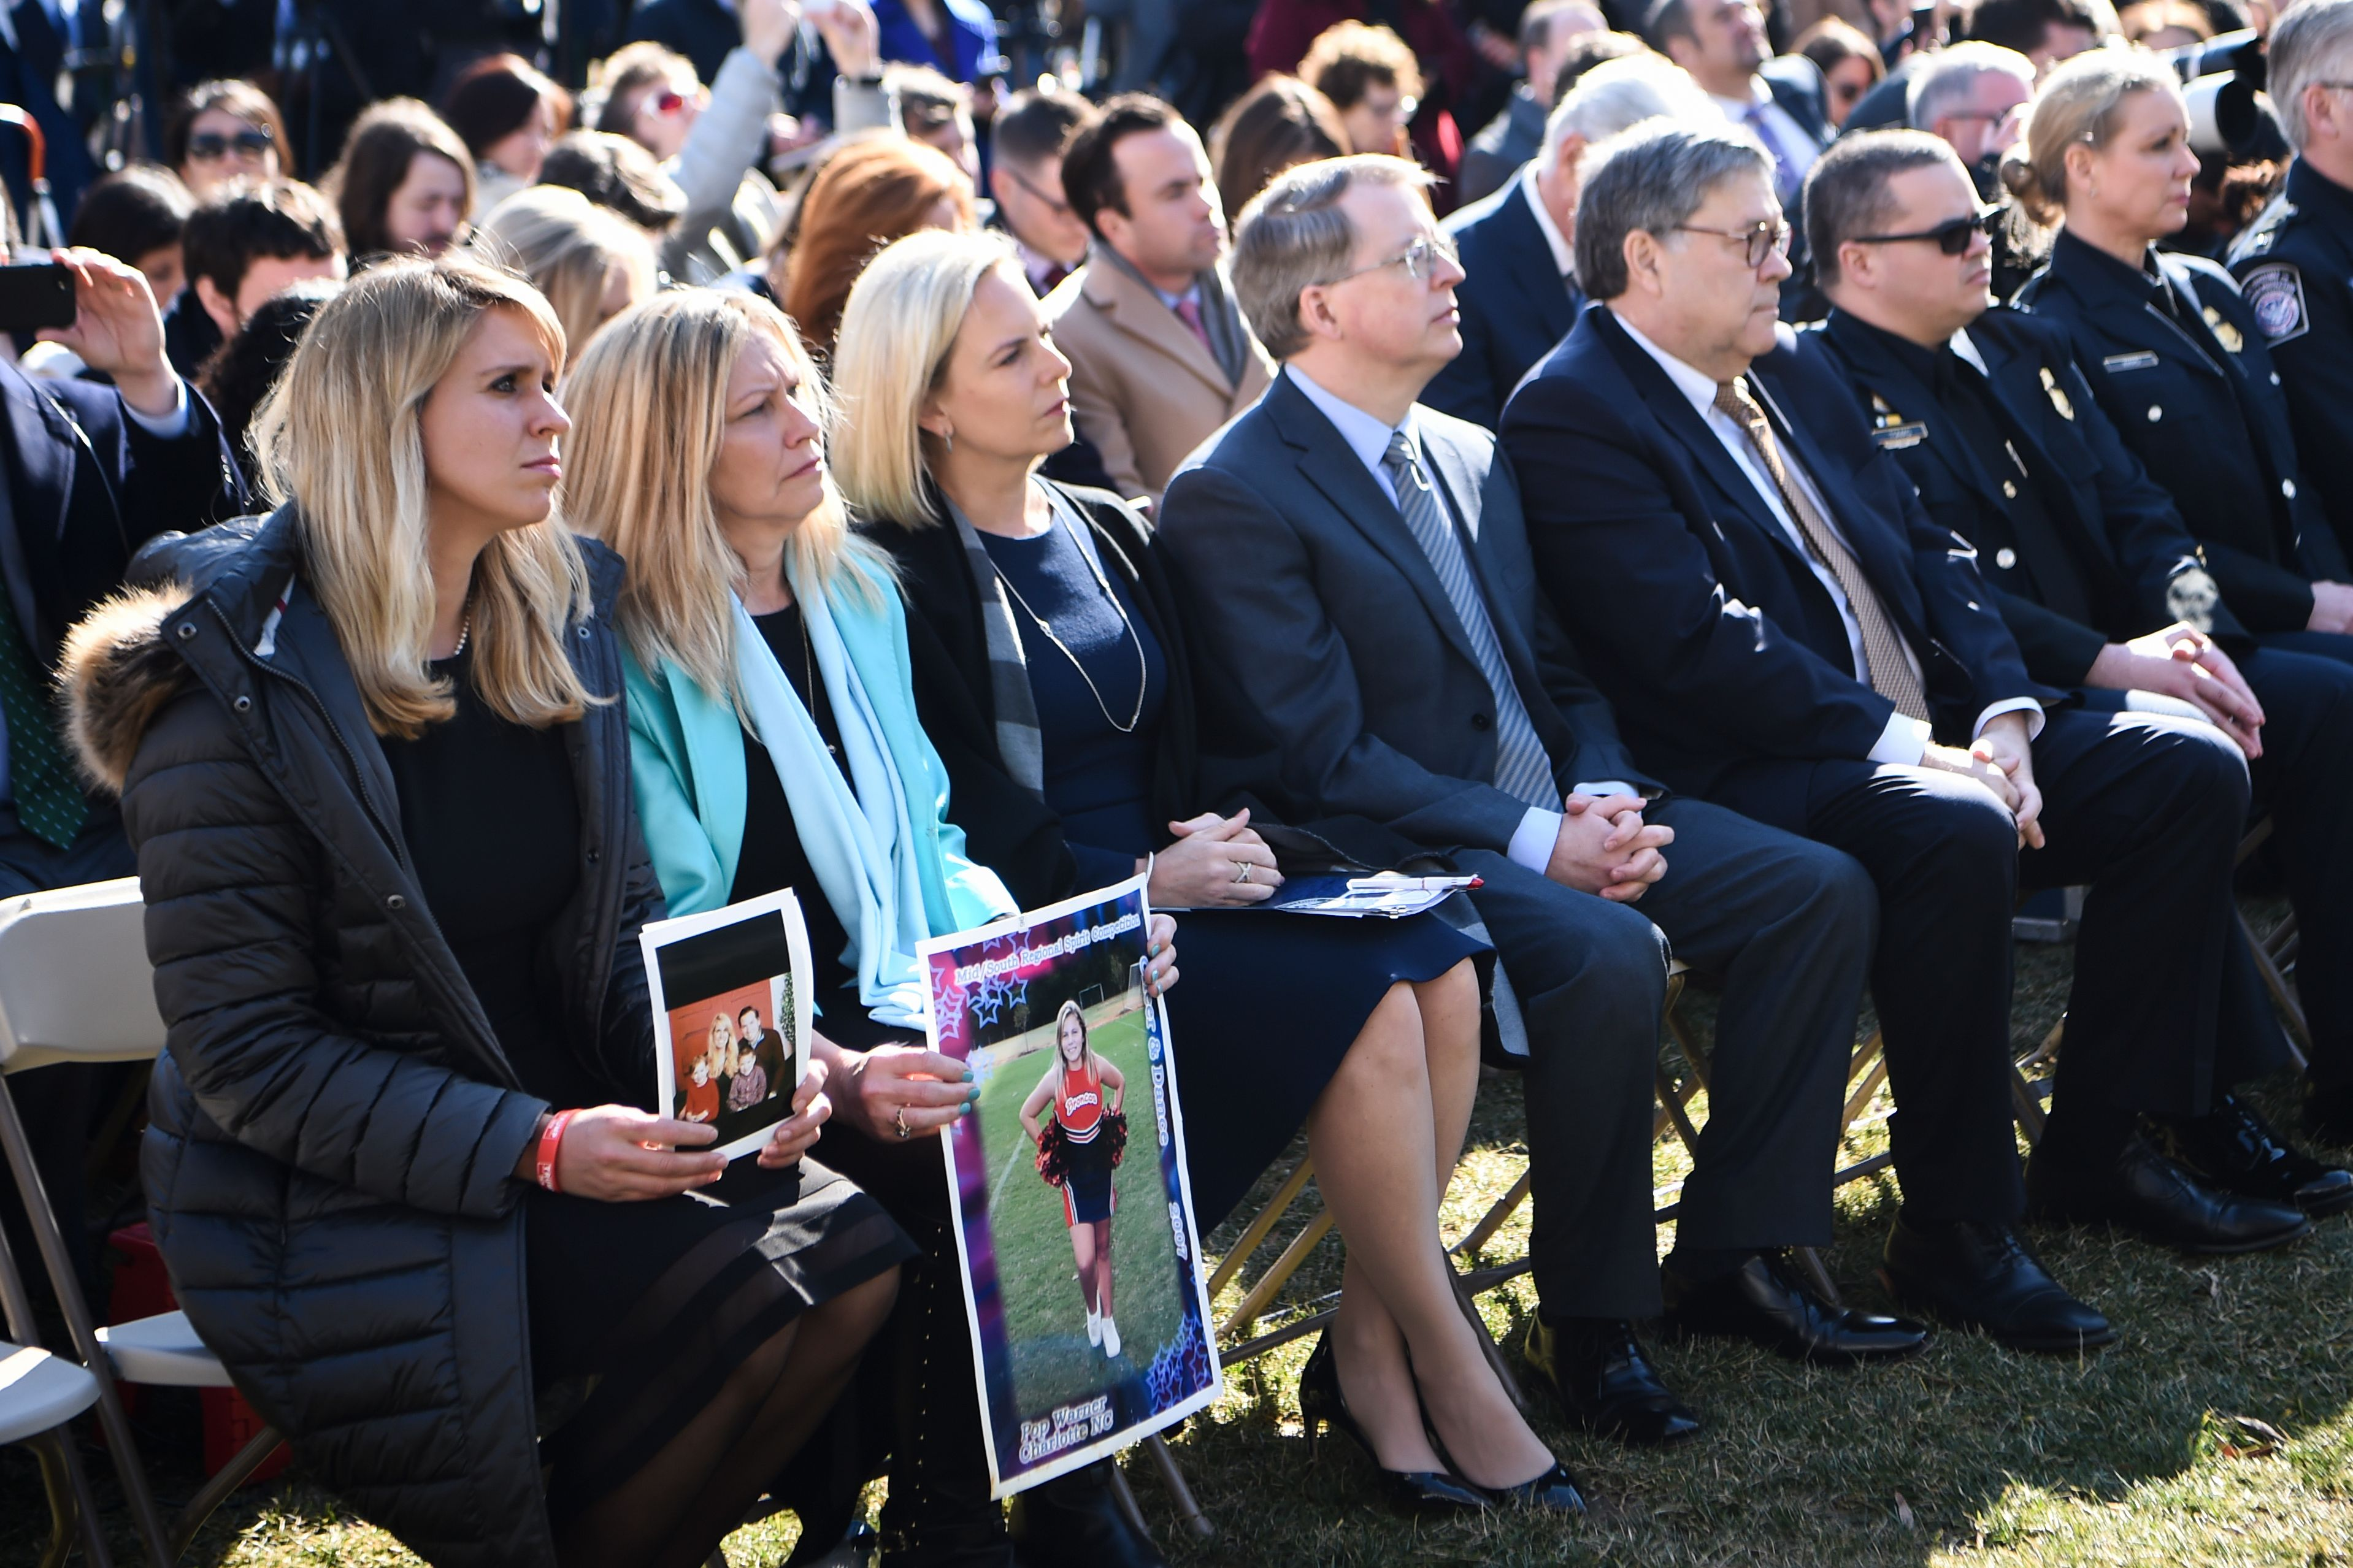 Family members hold portraits of loved one that were victims of crimes committed by undocumented immigrants, before US President Donald Trump delivers remarks, as US Secretary of Homeland Security Kirstjen Nielsen (3L), and US Attorney General William Barr (3R) look on in the Rose Garden at the White House in Washington, DC on February 15, 2019. (Photo: BRENDAN SMIALOWSKI/AFP/Getty Images)